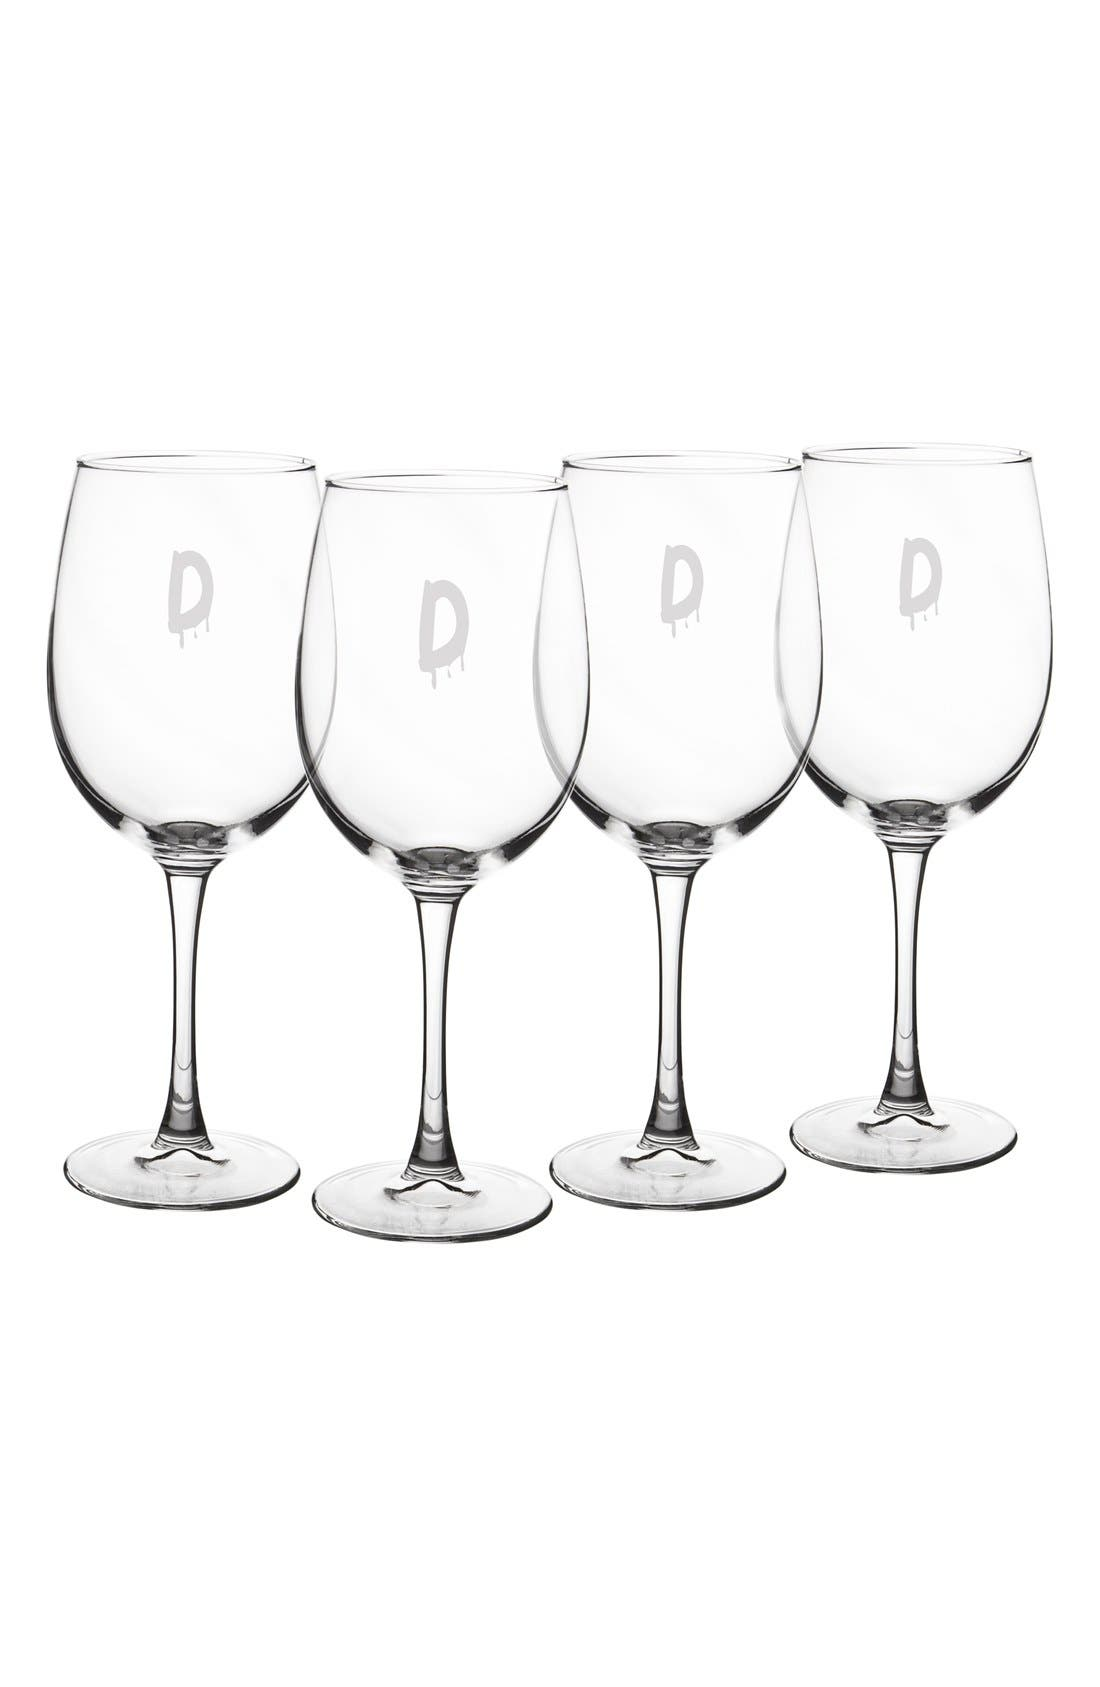 Main Image - Cathy's Concepts Spooky Monogram Set of 4 White Wine Glasses